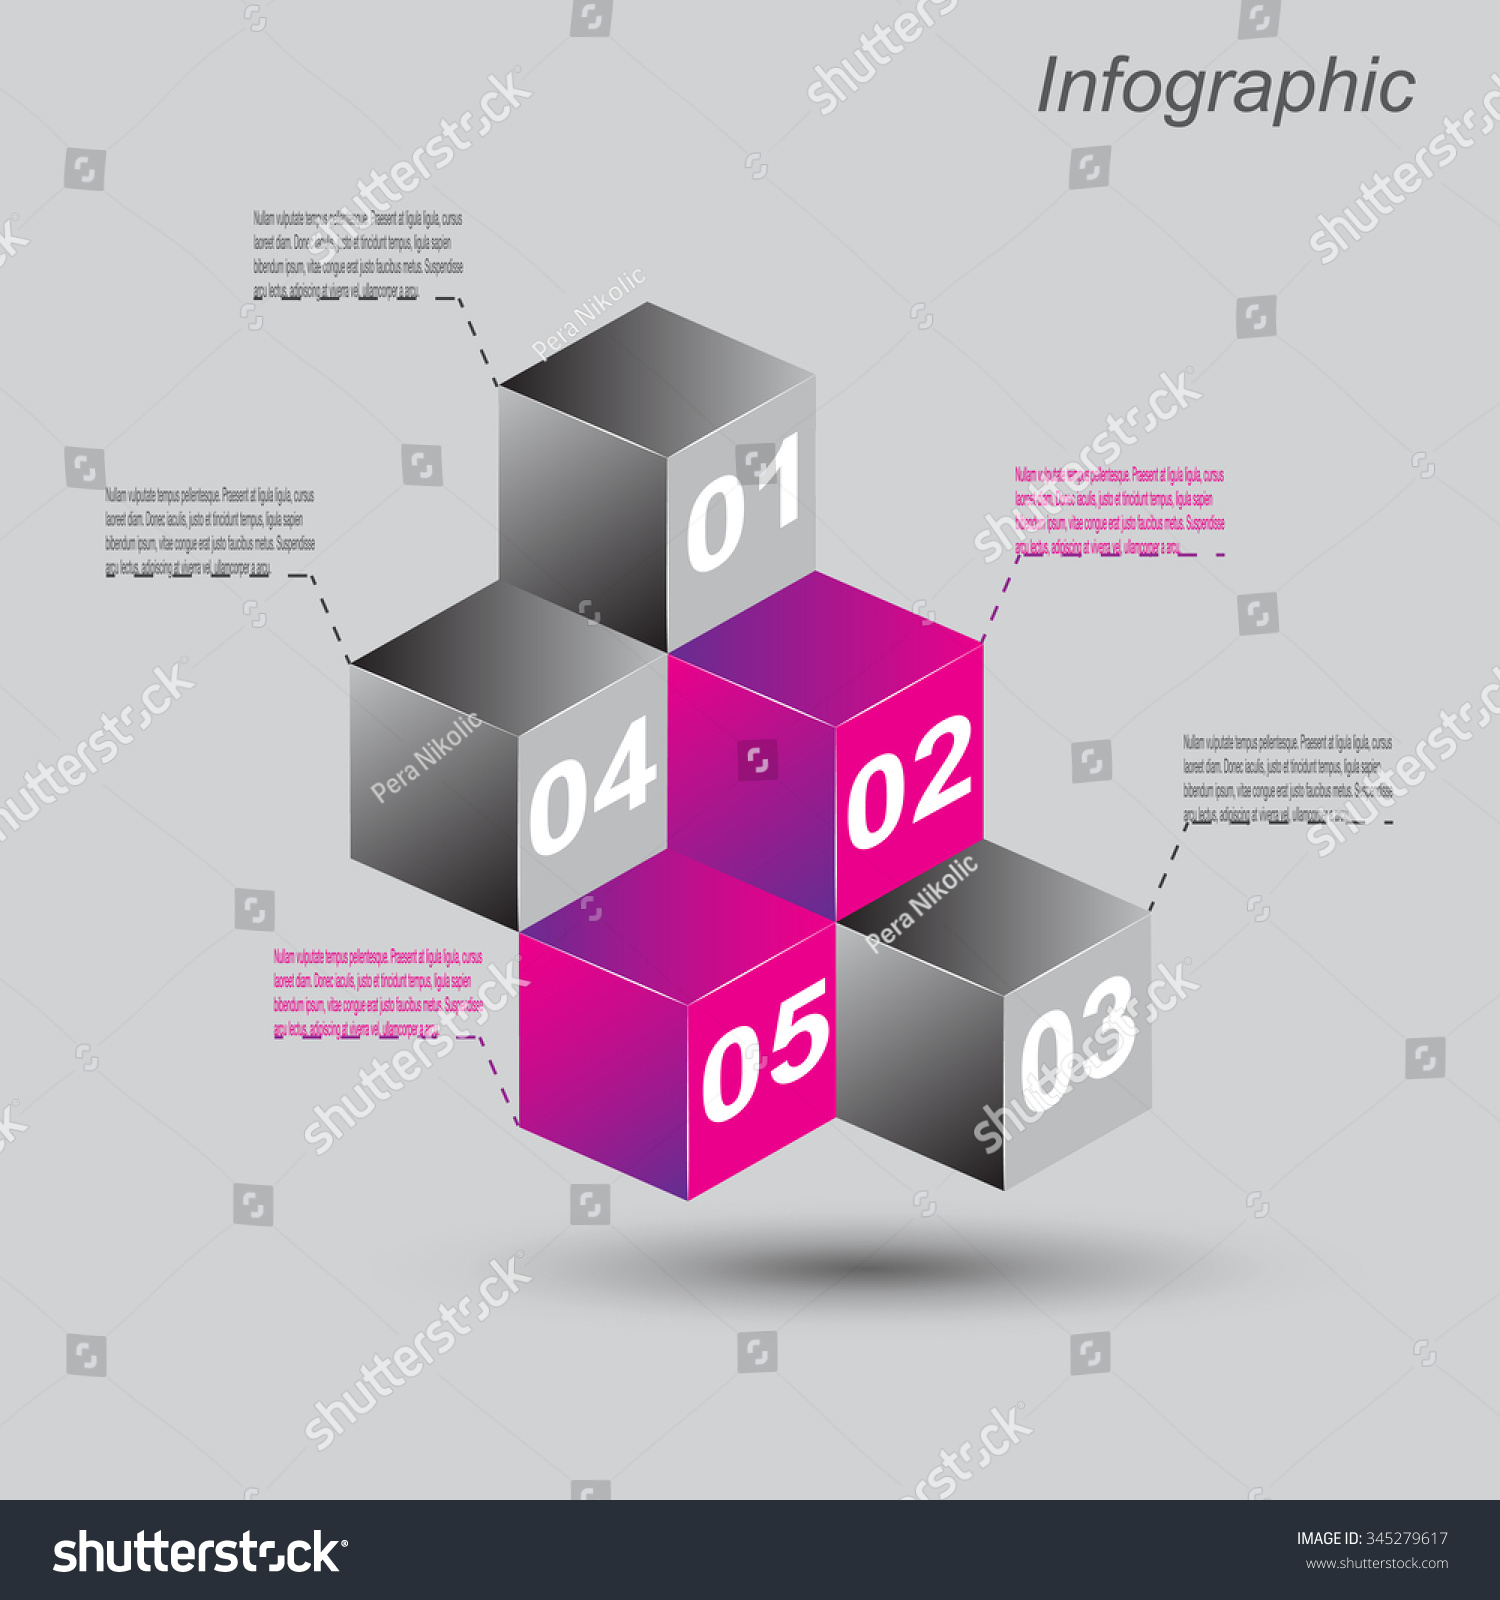 Infographic Design Templates Form 3d Box Stock Vector 345279617 ...